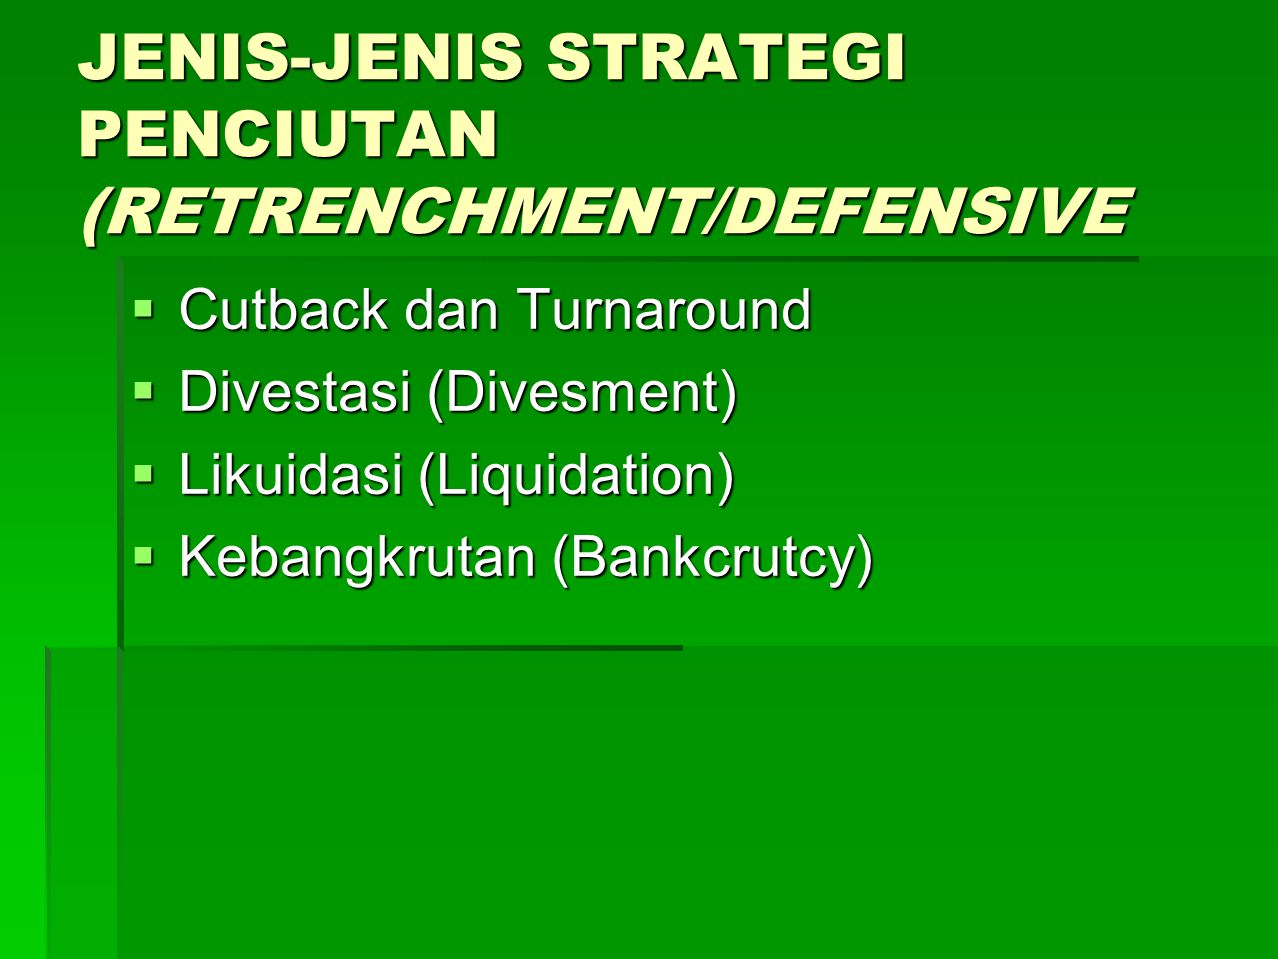 JENIS-JENIS STRATEGI PENCIUTAN (RETRENCHMENT/DEFENSIVE